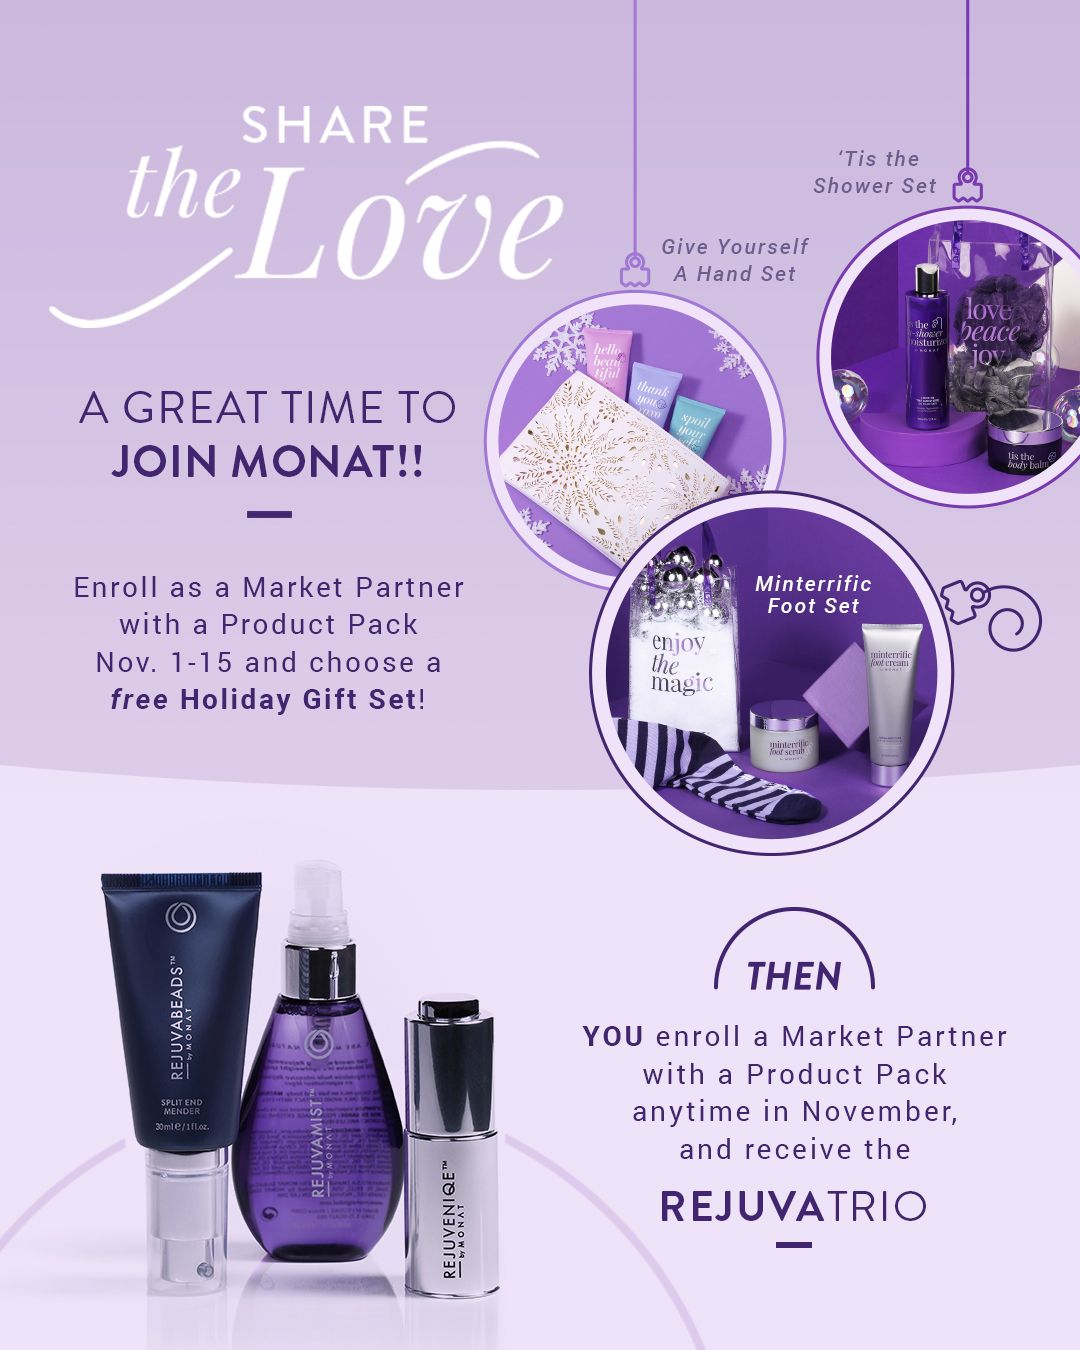 MONAT Resource Library Hair care business, Monat hair